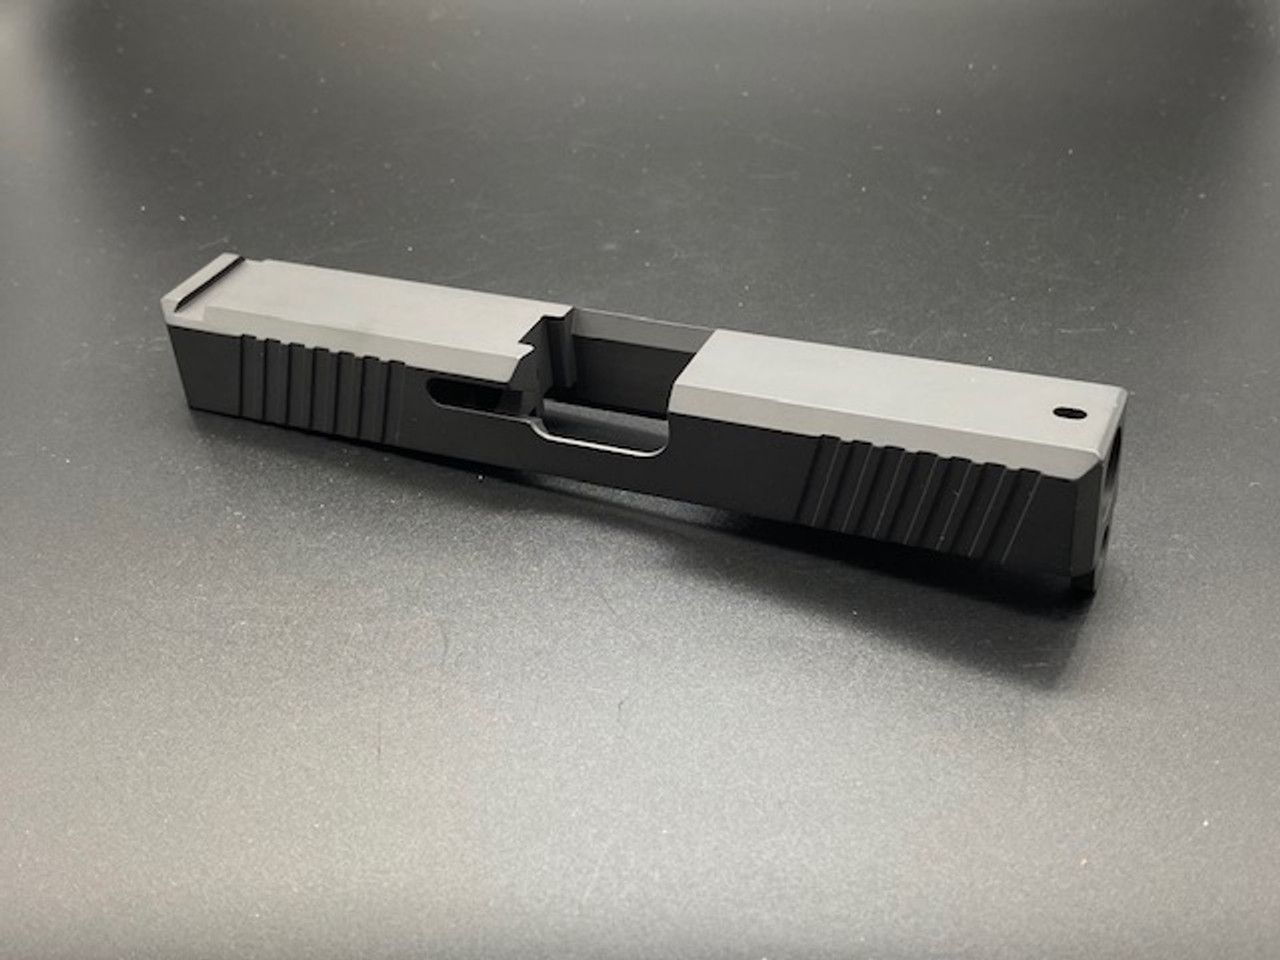 MDX Arms G19 V2 9mm Stripped Slide with Front and Rear Serration - No RMR Cut